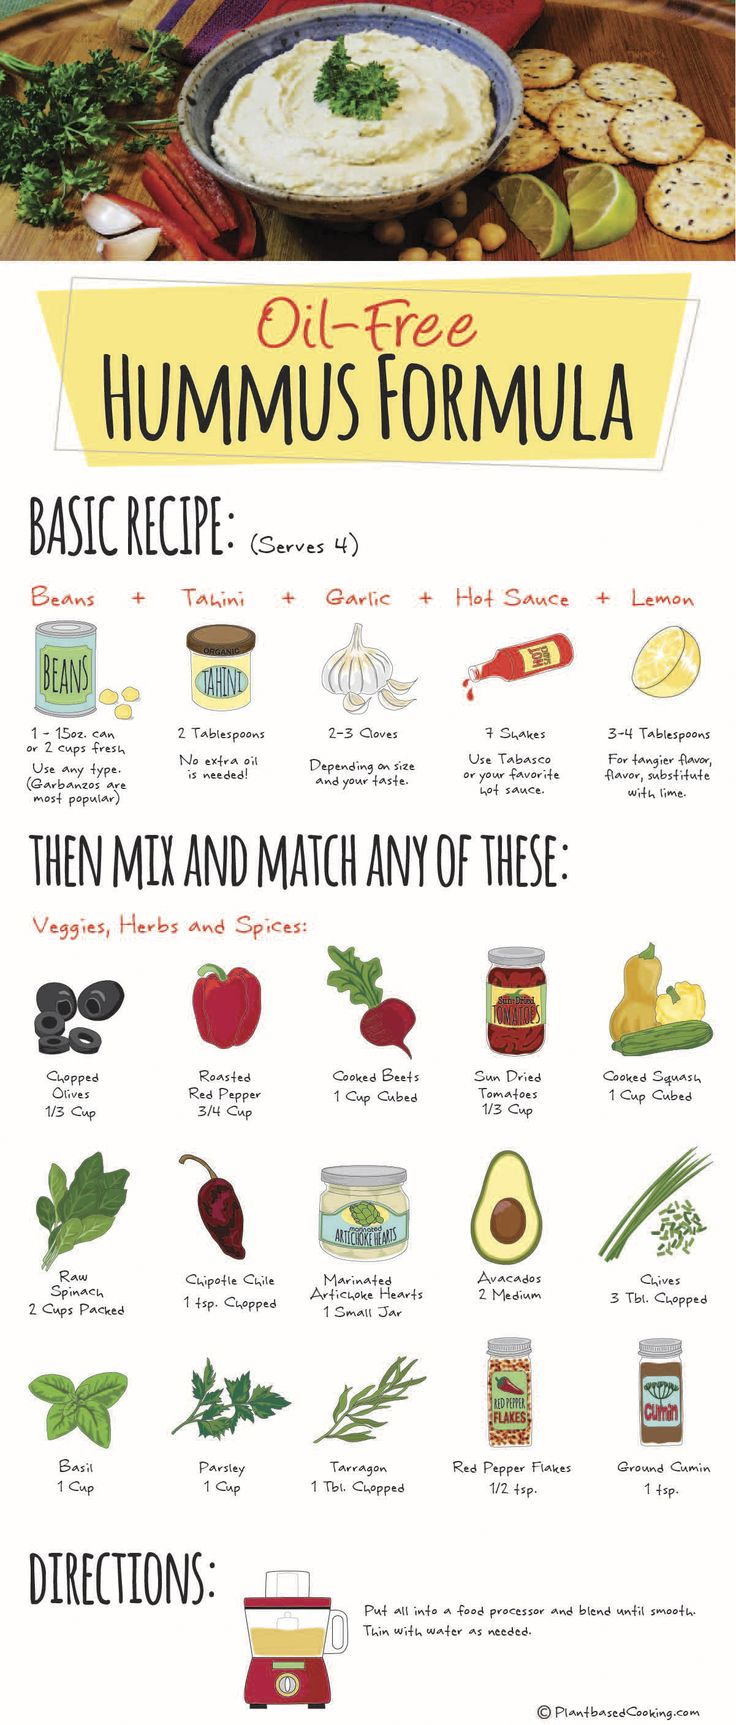 "Mix and match these ingredients for many oil-free versions of hummus. Download and print this 8 1/2 x 11"" version for yourself."